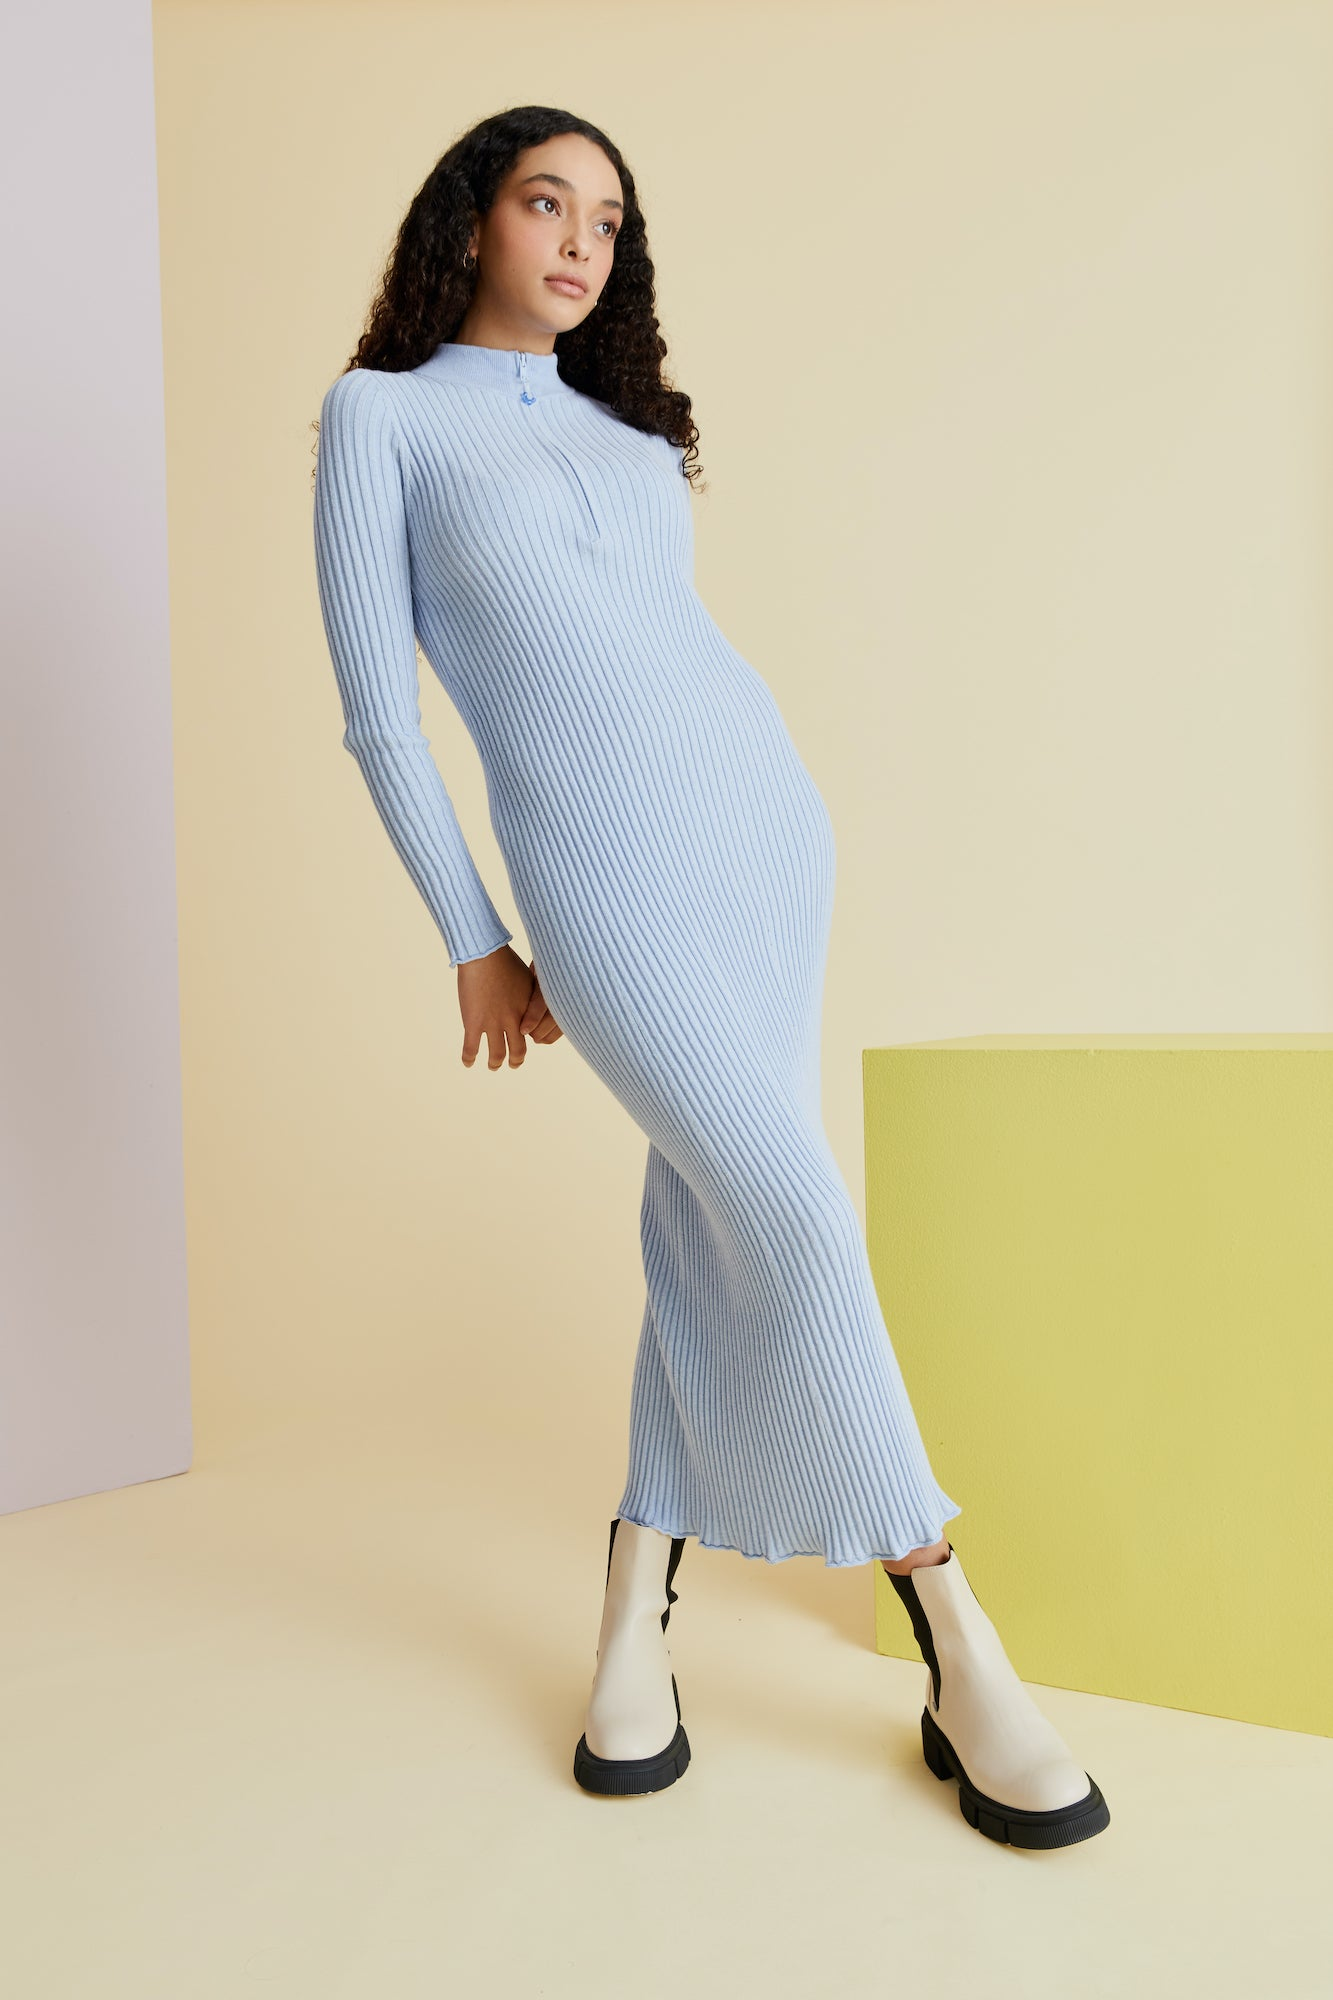 Zippy Knitty Knit Dress in Sky Blue - hej hej